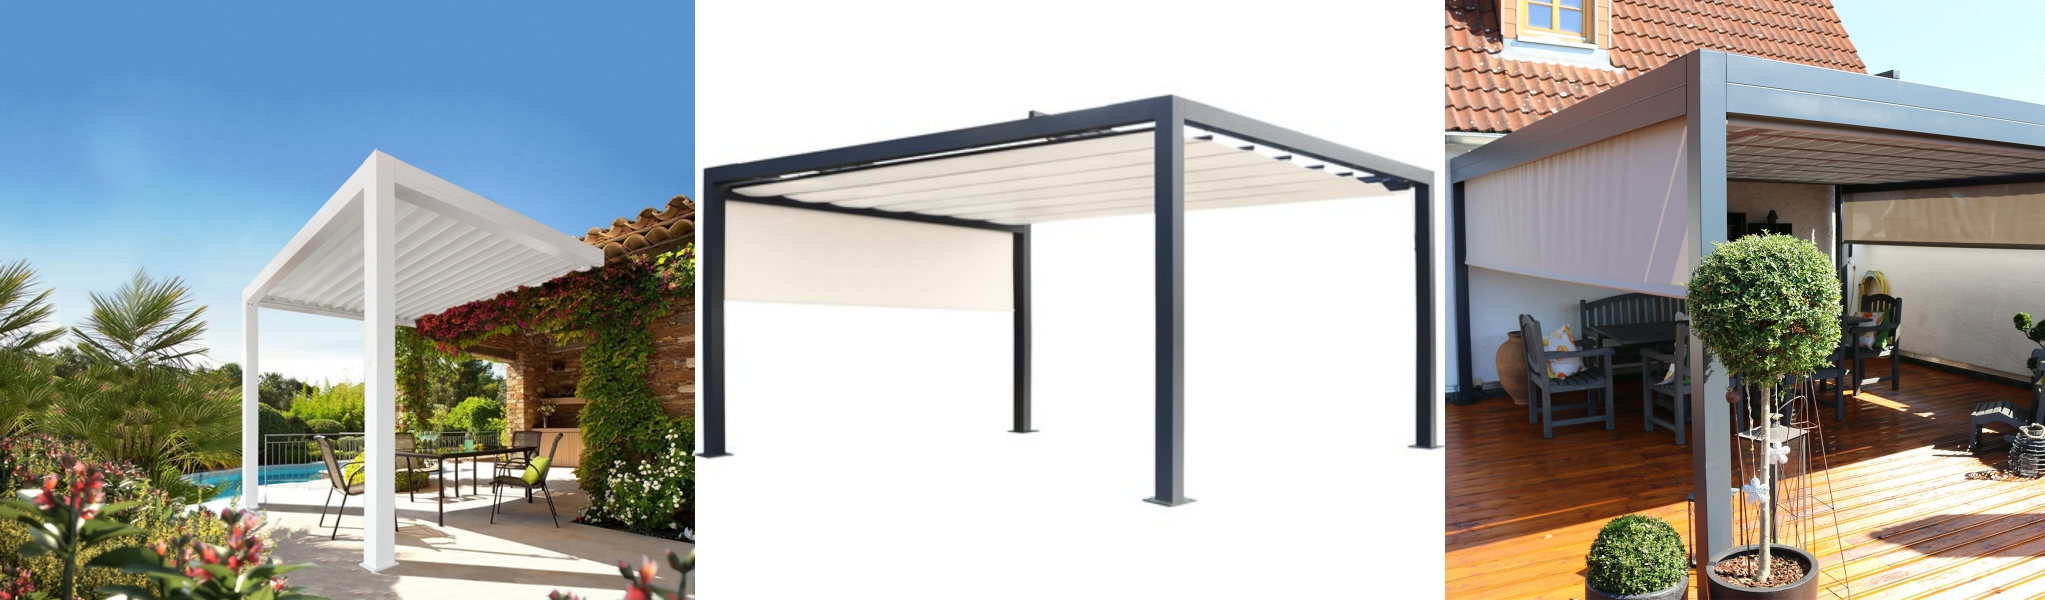 Markisen_made_in_germany_pergola_pavillon_sonnenschutz